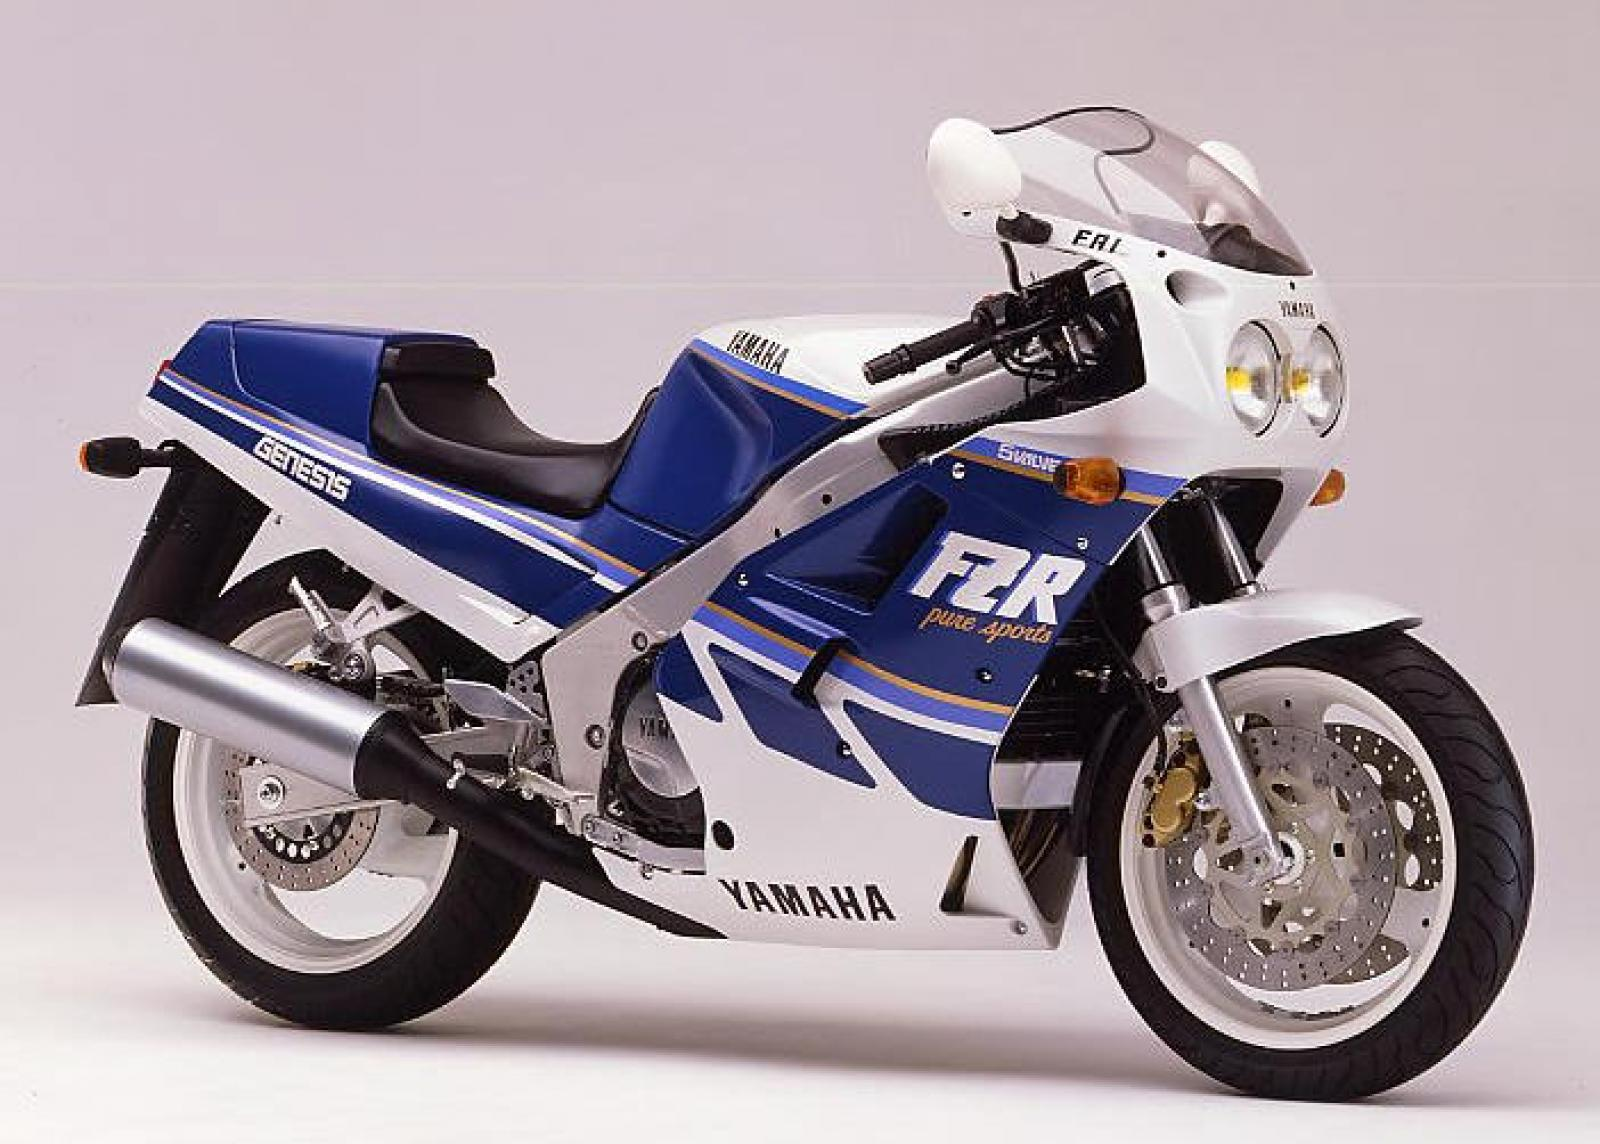 hight resolution of wiring diagram needed for 1989 yamaha fzr1000 genesis wiring libraryyamaha fzr 1000 genesis gallery